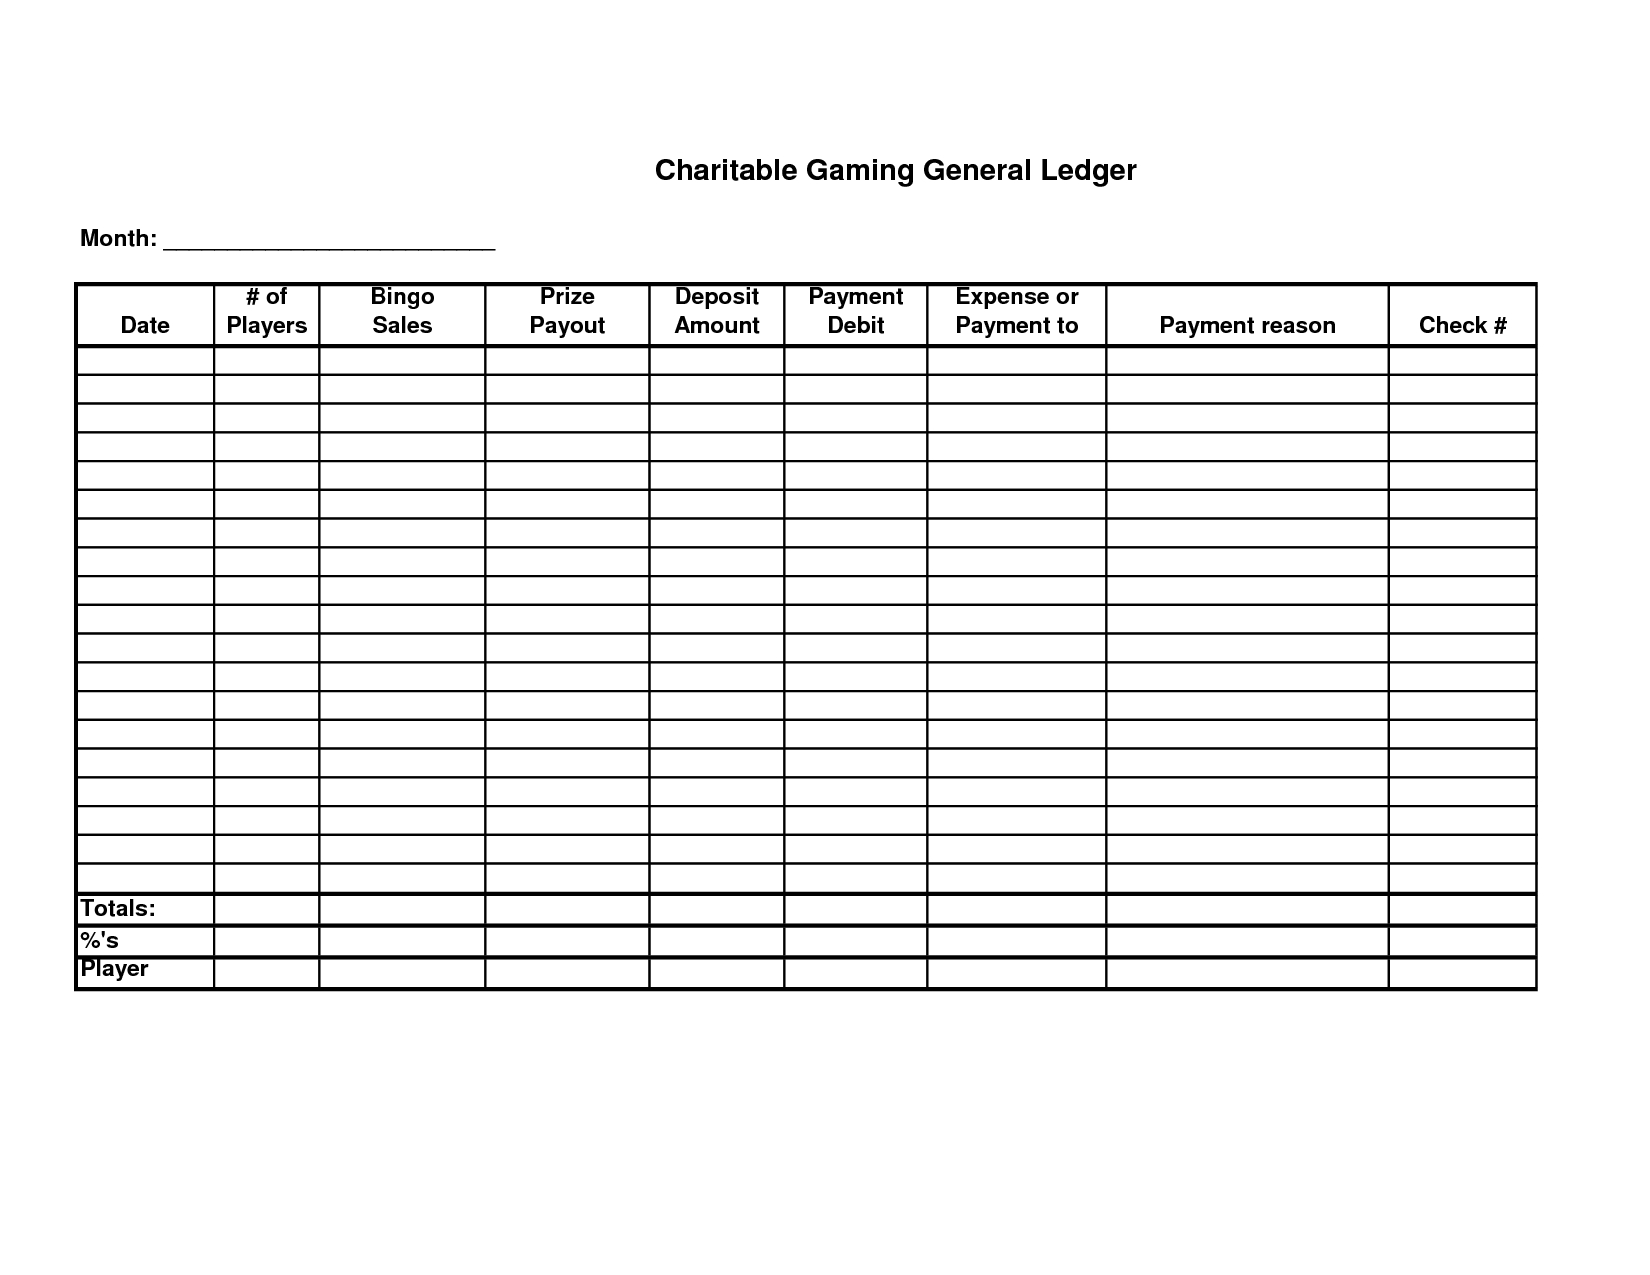 Free Printable General Ledger Sheet | Homemade Stuff | Pinterest - Free Printable Ledger Sheets